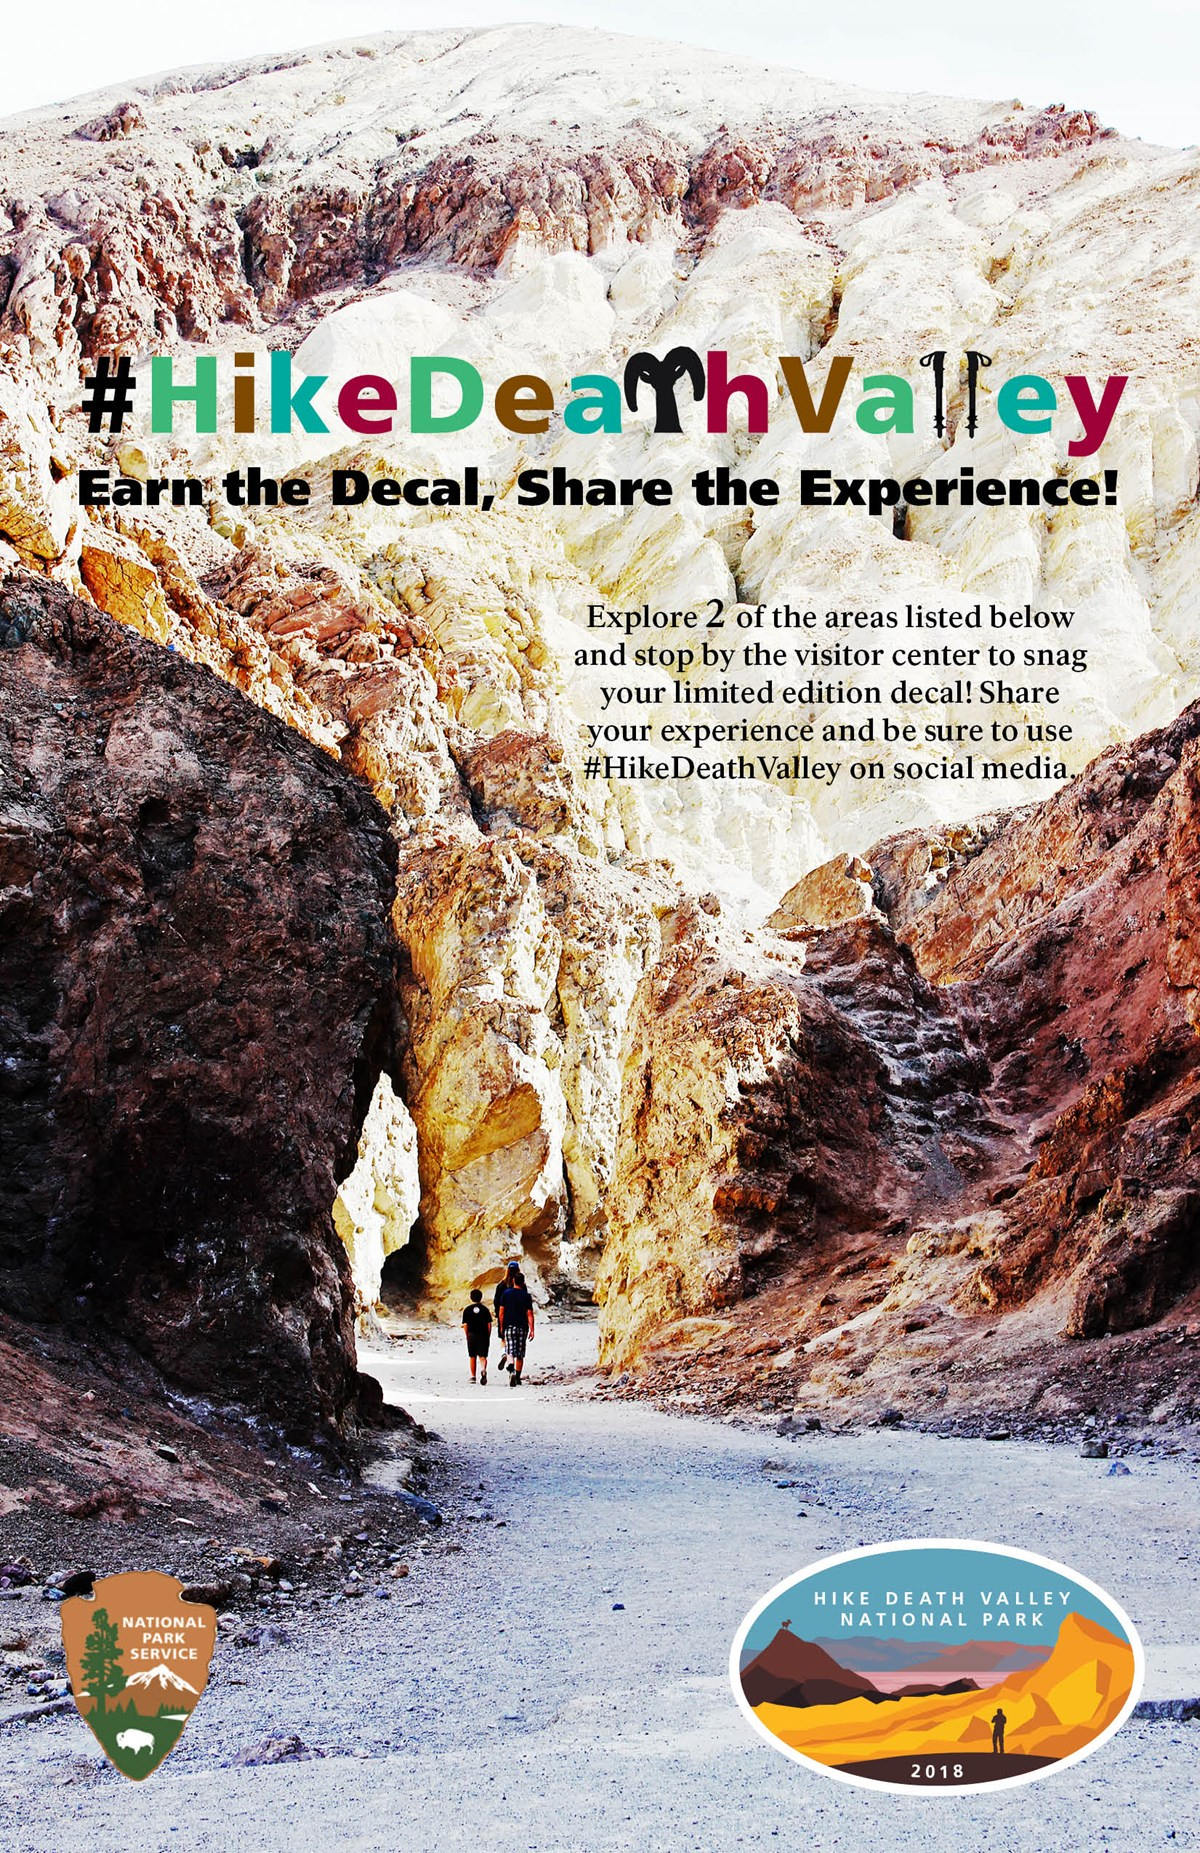 "A family walks through a badlands canyon. ""# hike death valley"" logo. ""earn the decal, share the experience."" explore two of the areas listed to earn your decal. share your experience with #hikedeathvalley."